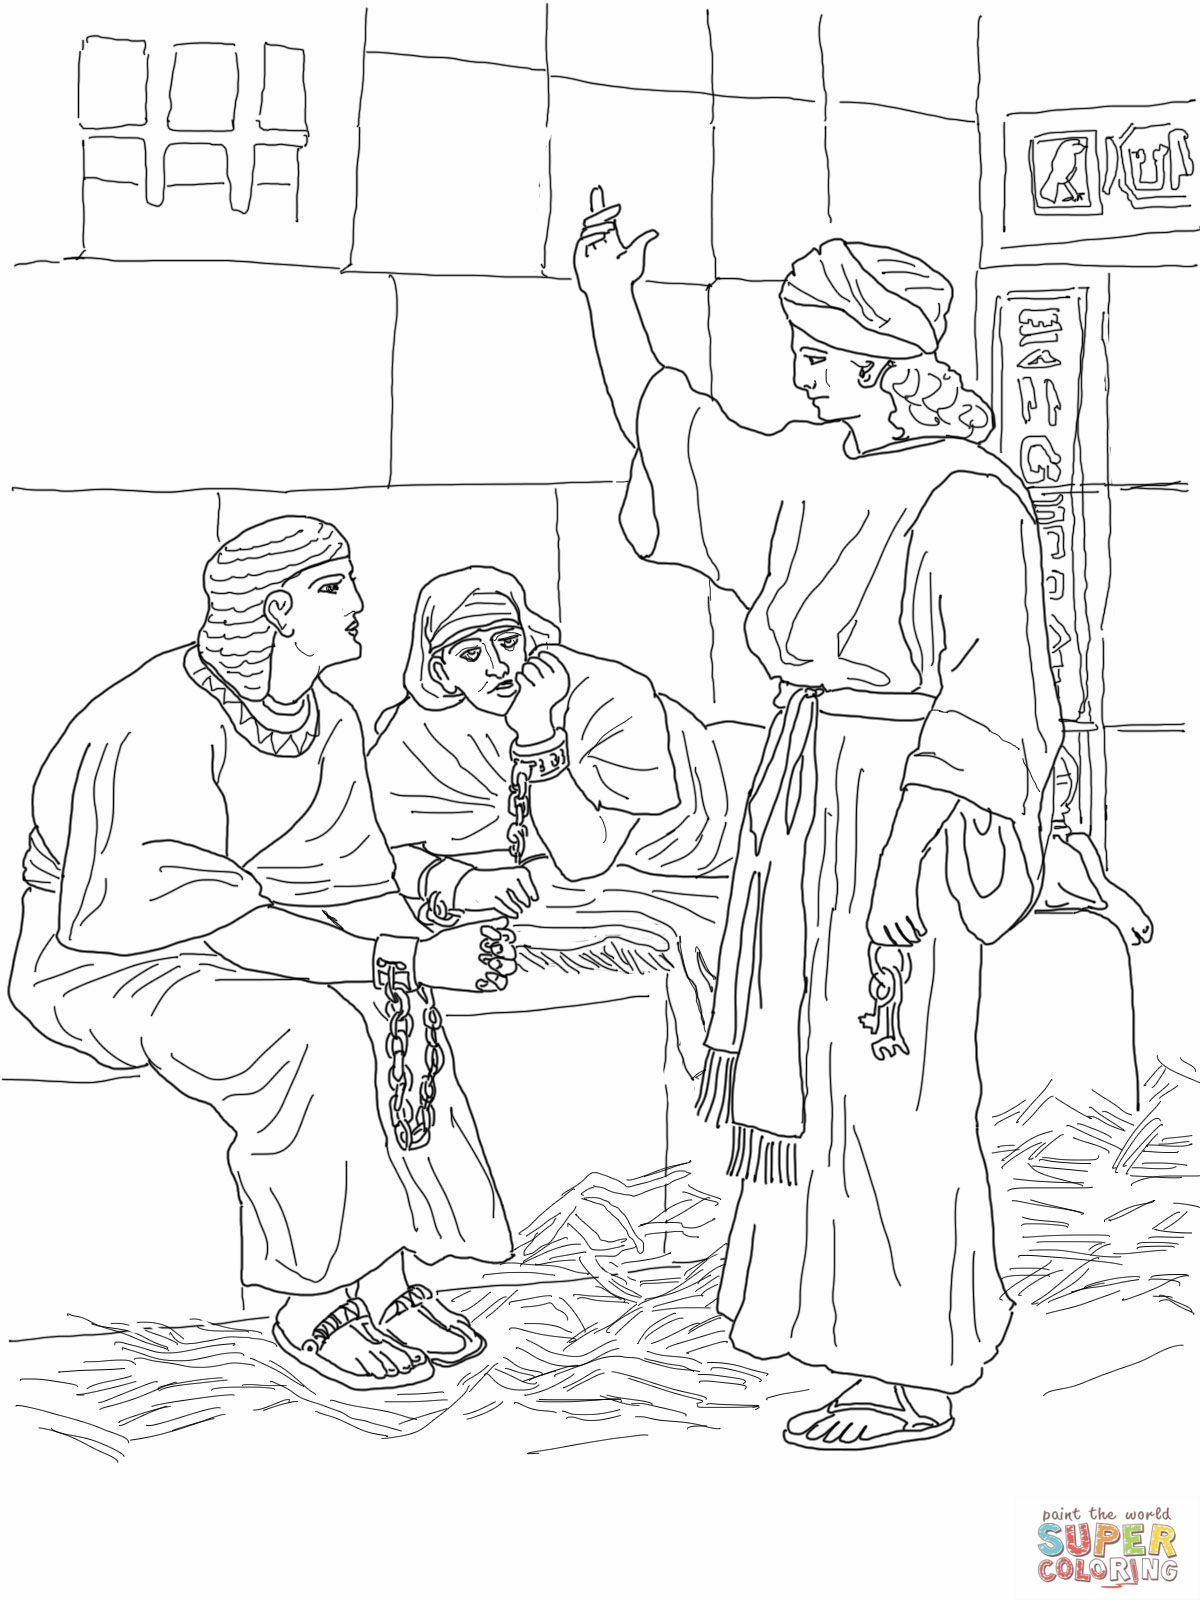 joseph forgives his brothers coloring page jpg 1200 1600 pixels